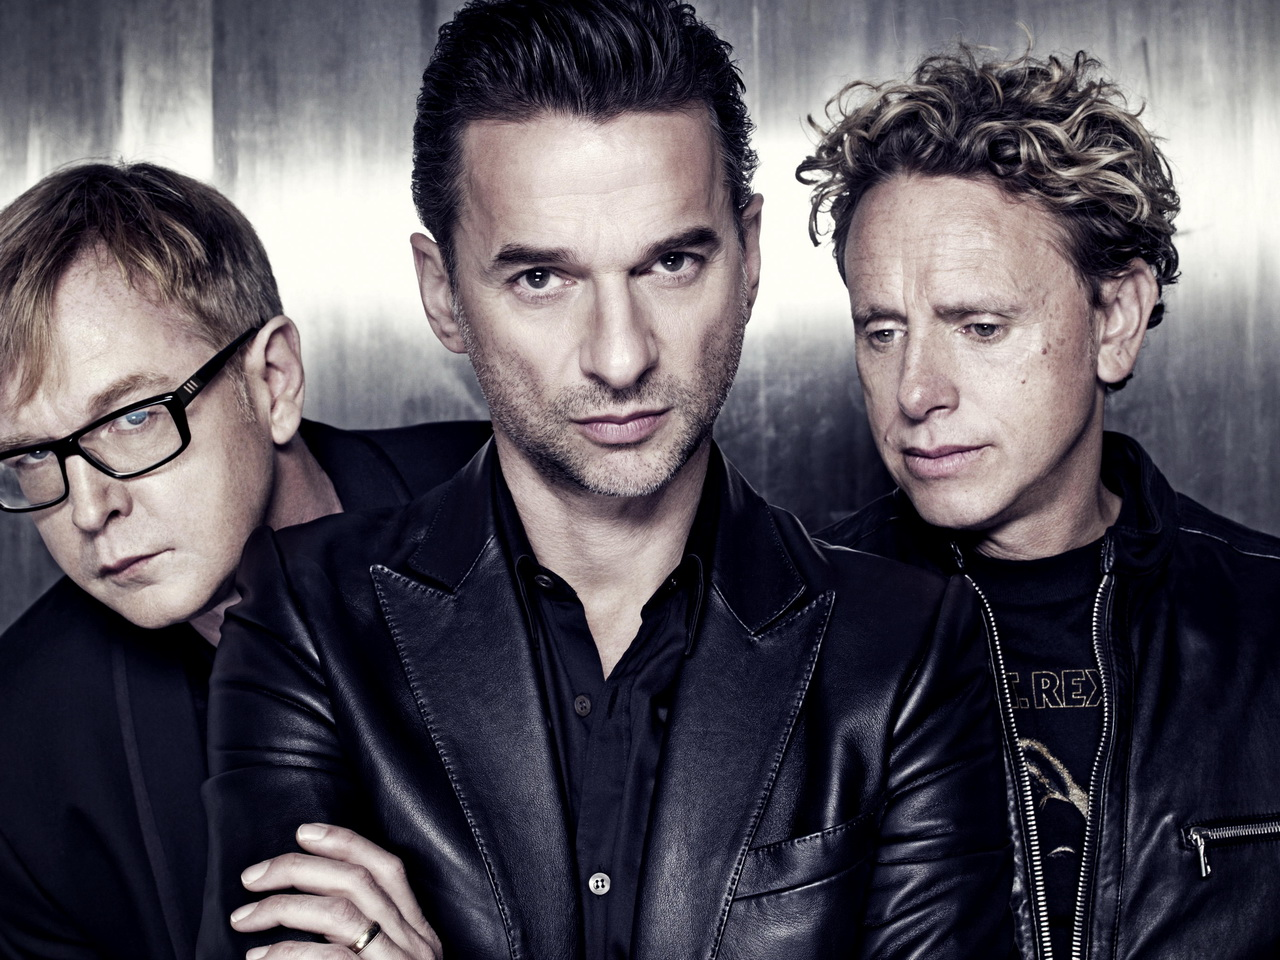 depeche mode shot for press release